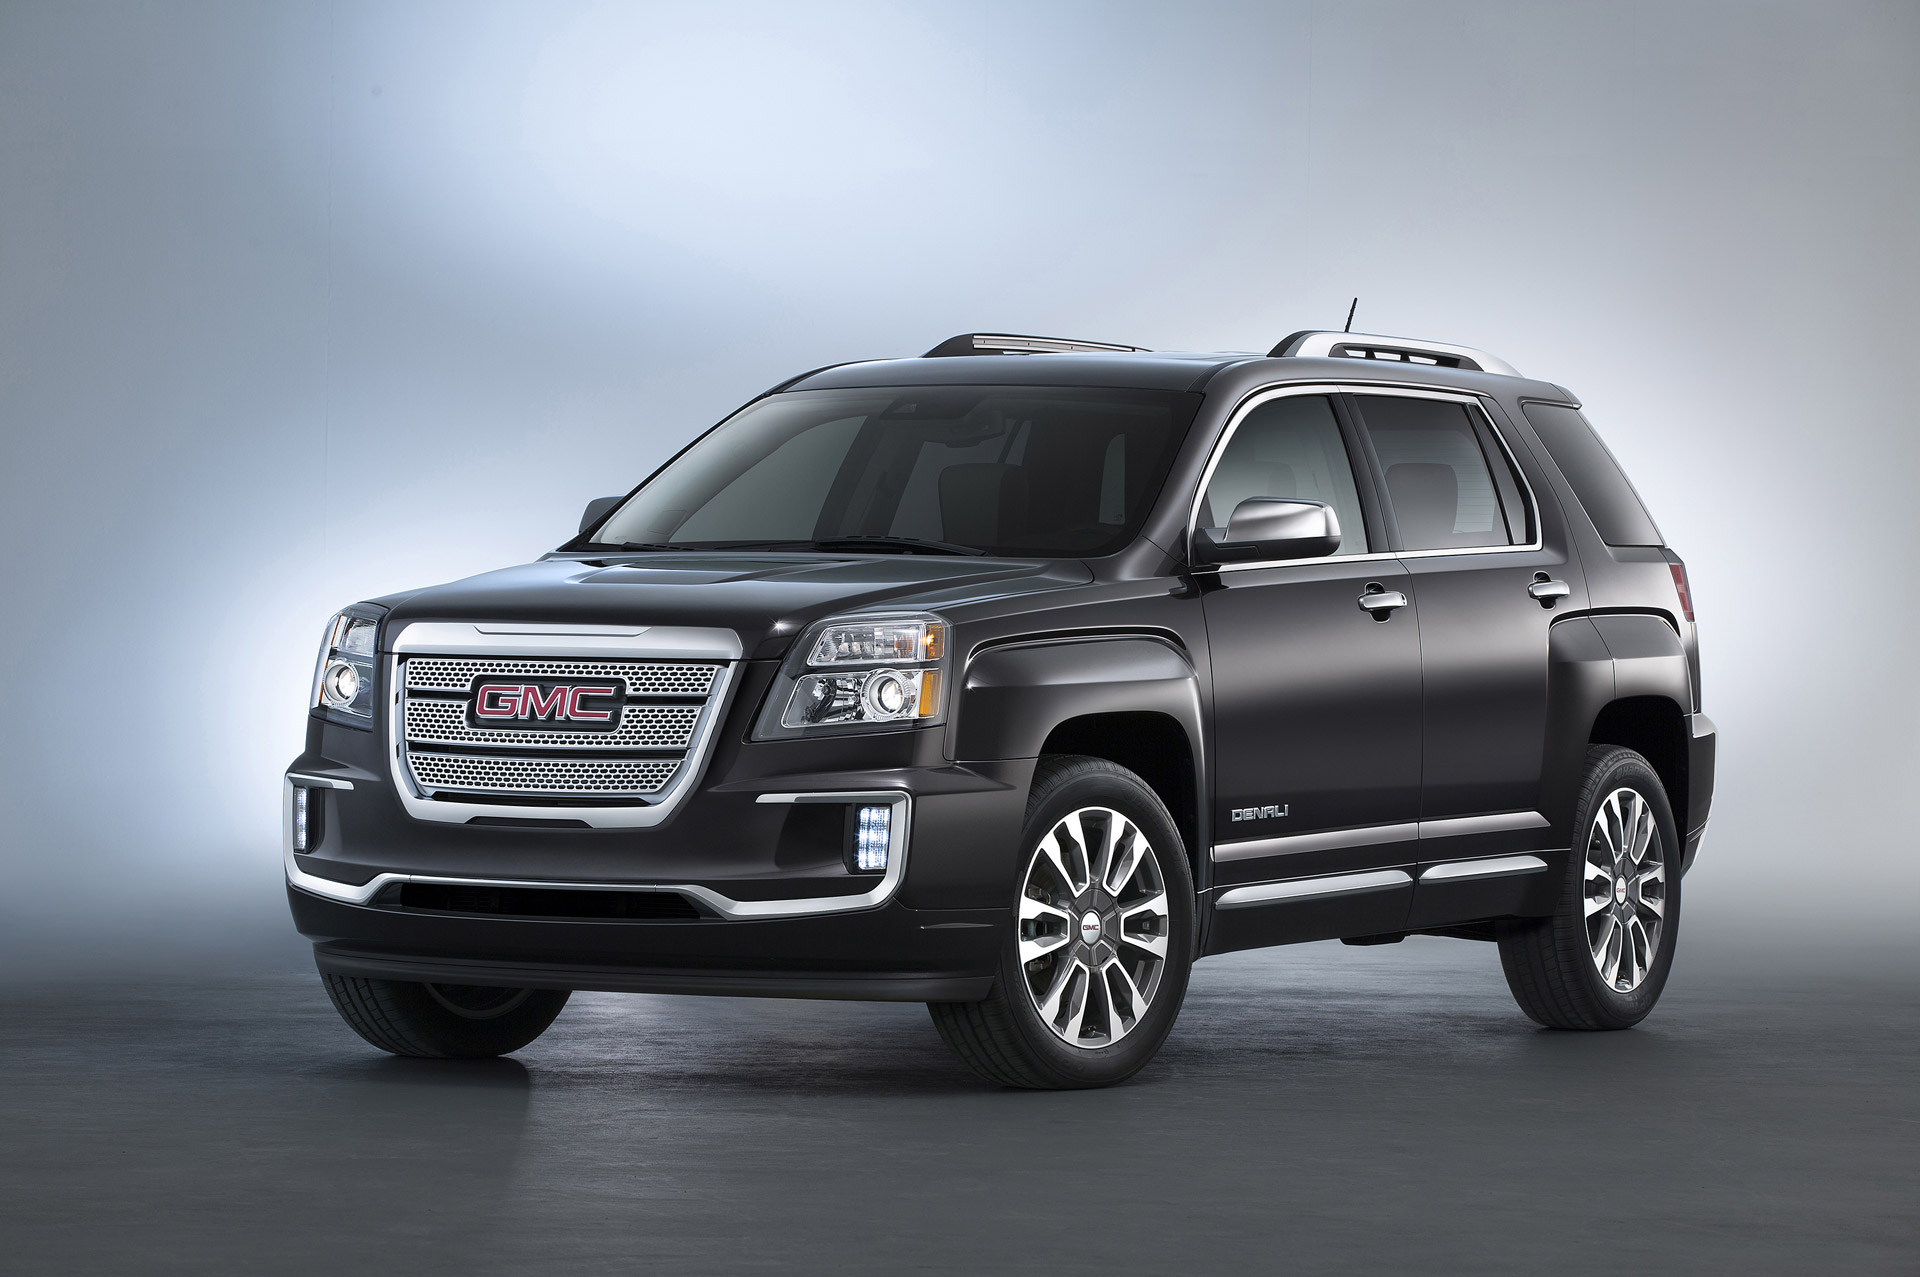 new and used gmc terrain prices photos reviews specs the car connection. Black Bedroom Furniture Sets. Home Design Ideas